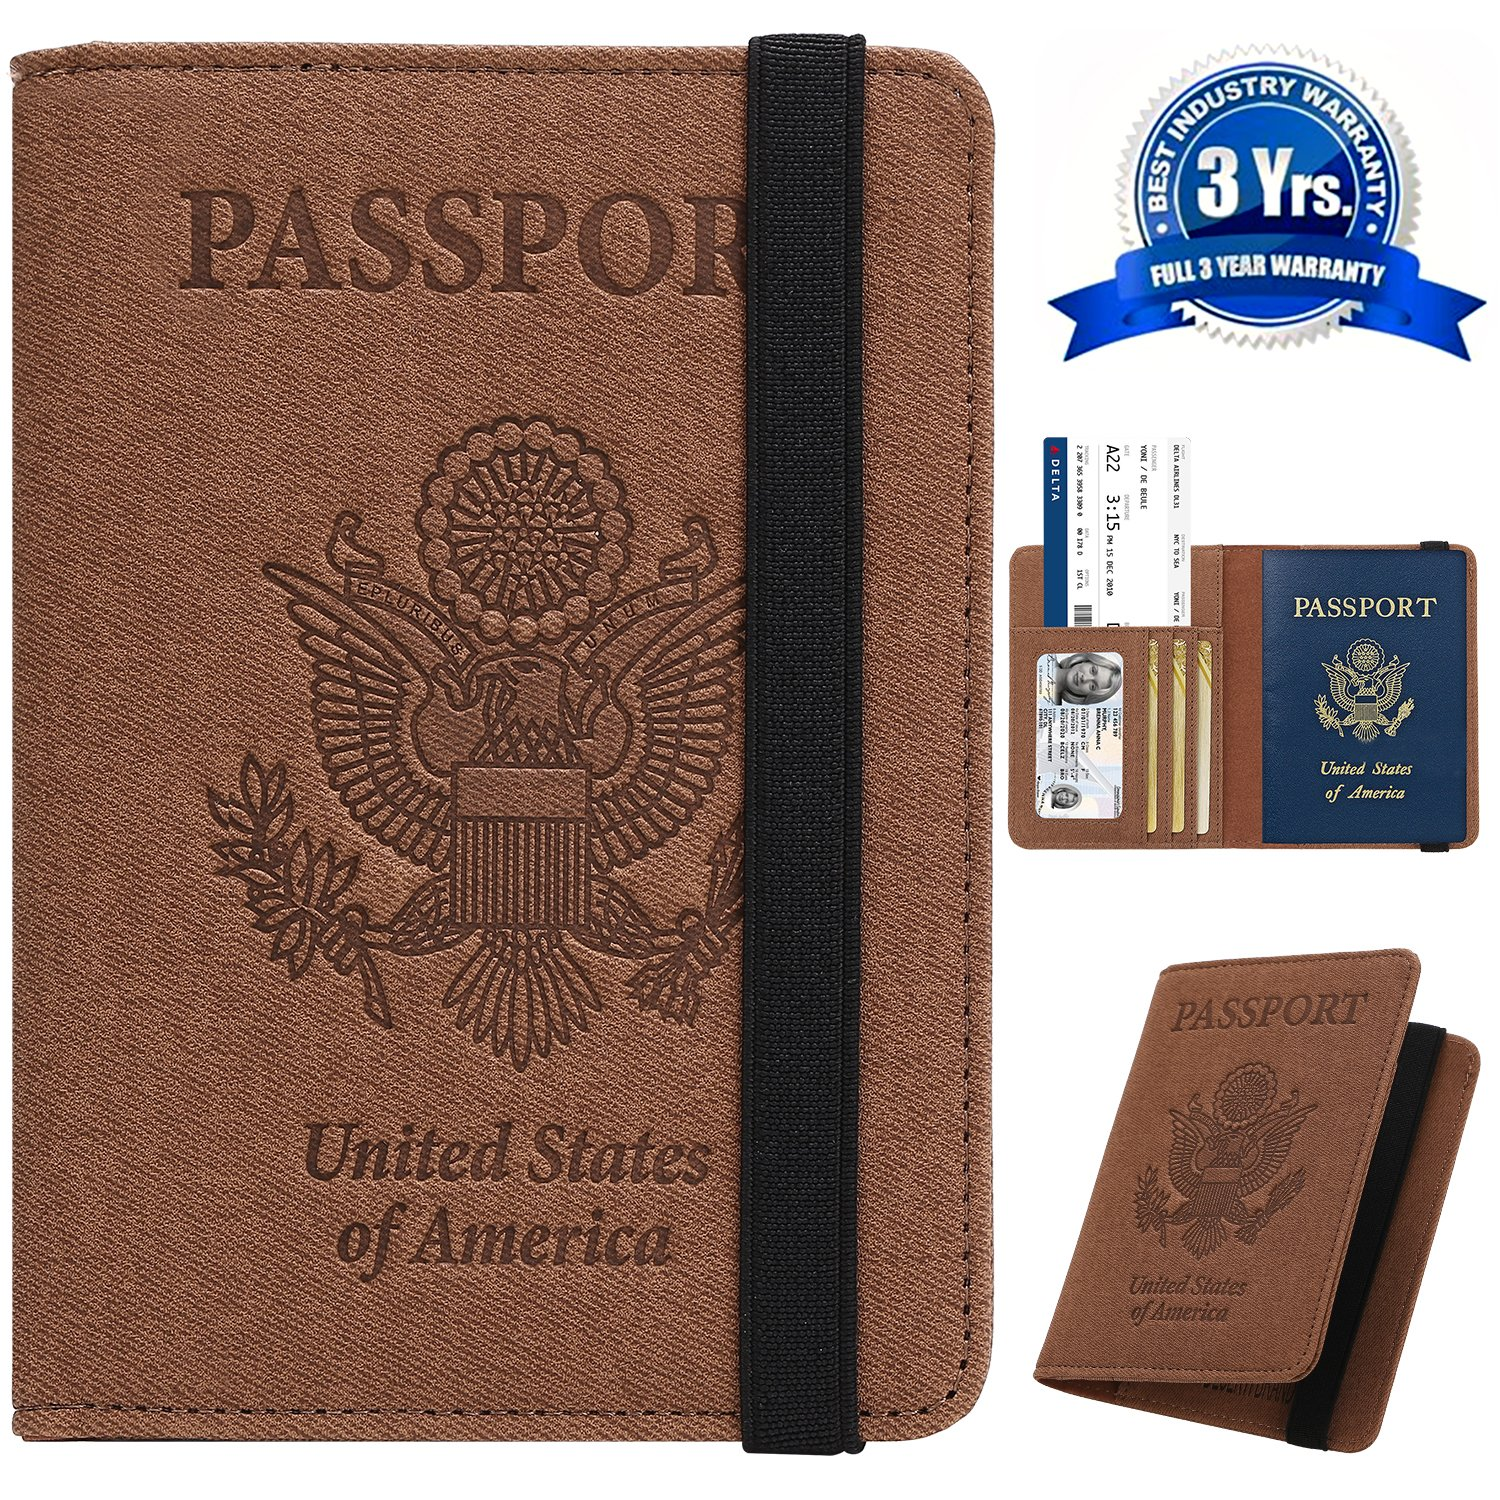 70caf7f82ca3 Passport Holder Cover Wallet Case - DESERTI BRANDS Leather RFID Blocking  For Women Men - Brown